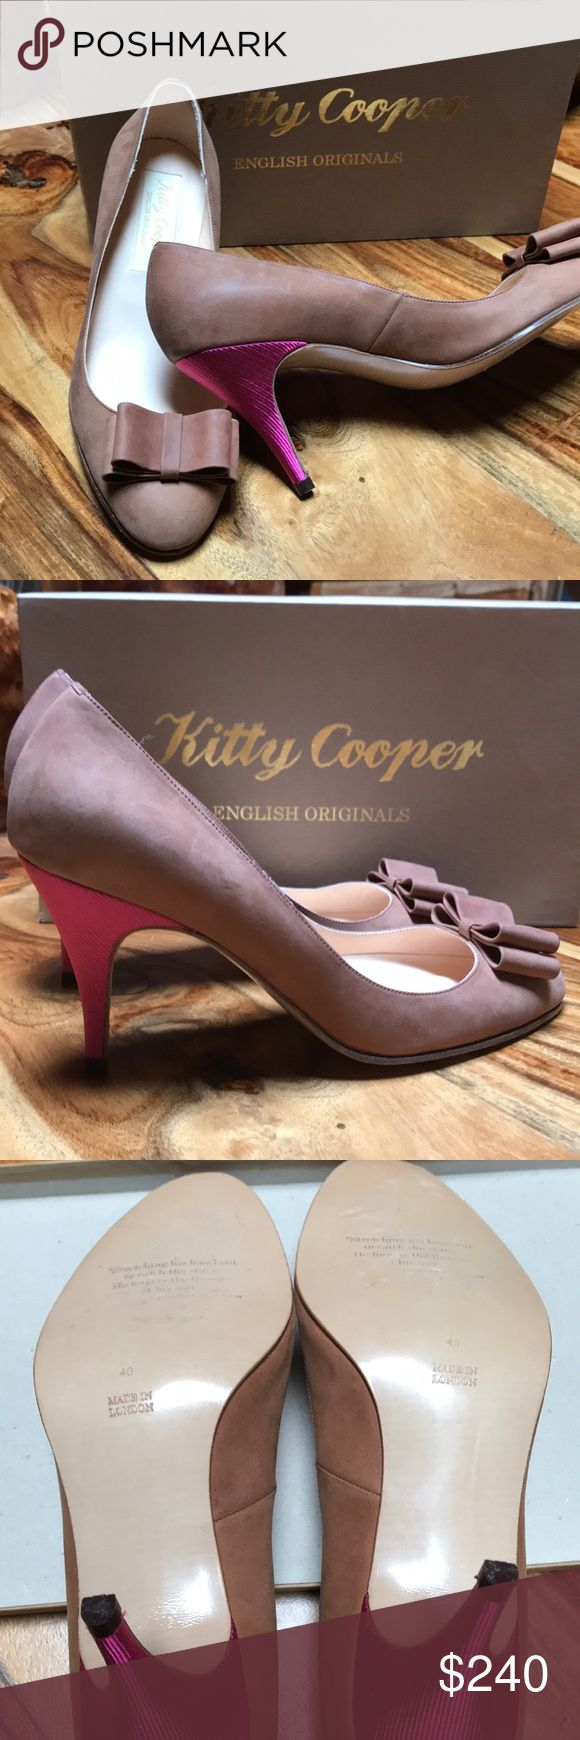 """NWOT Kitty Cooper Brown Sueded kid w/pink heels. Original English designed, made in London. Purchased at Portobella Road East shoppe (Kitty Cooper) while working in London.  Softest brown of finest suede with shocking pink satin fabric covering 3"""" heels. Size 40 (US 10).  Every detail cared for. Sexy toe cleavage. Kitty Cooper Shoes Heels"""